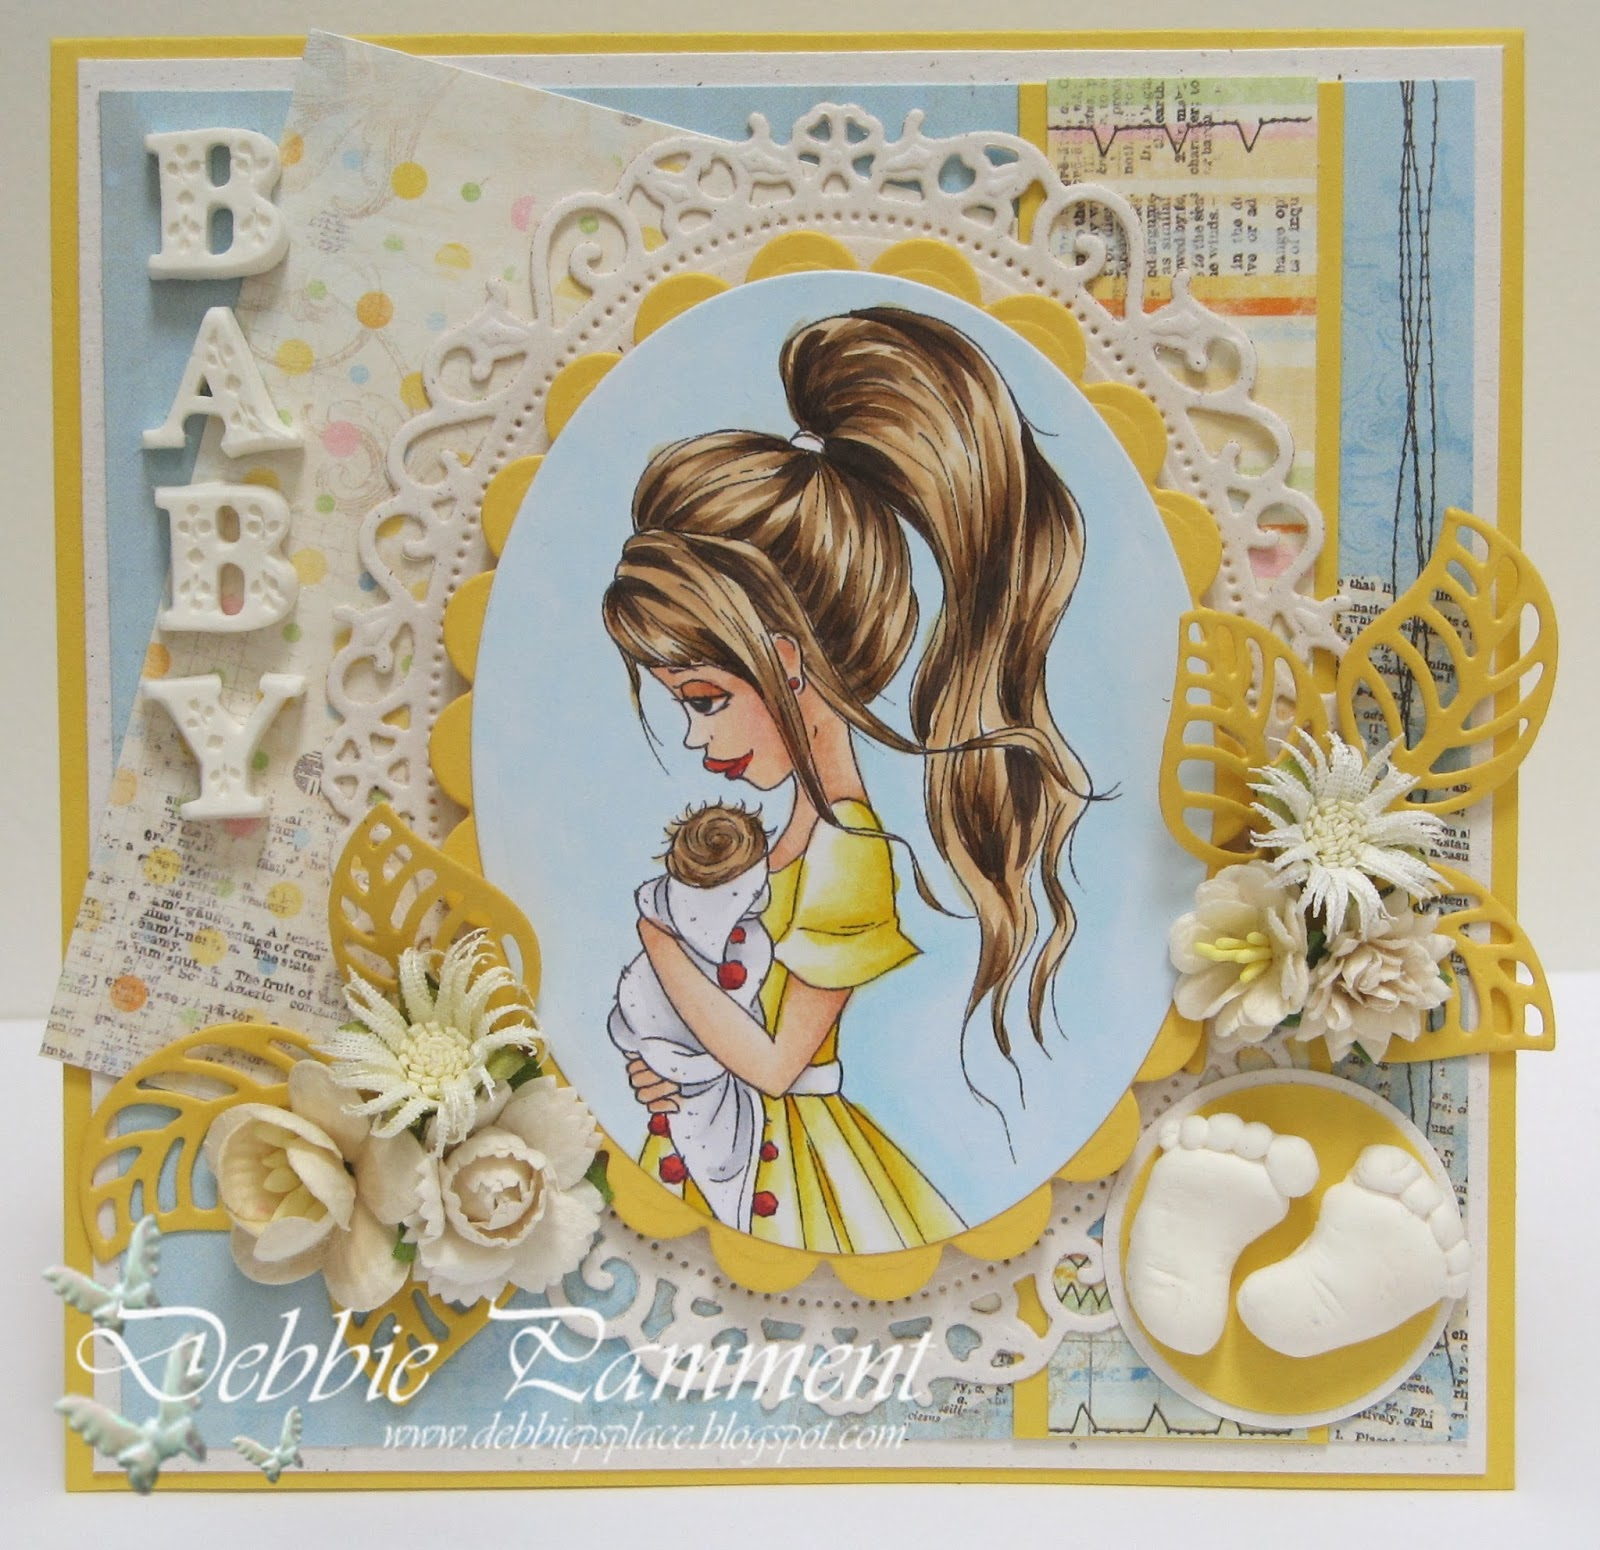 Debbie Ps Place A Saturated Canary Baby Card